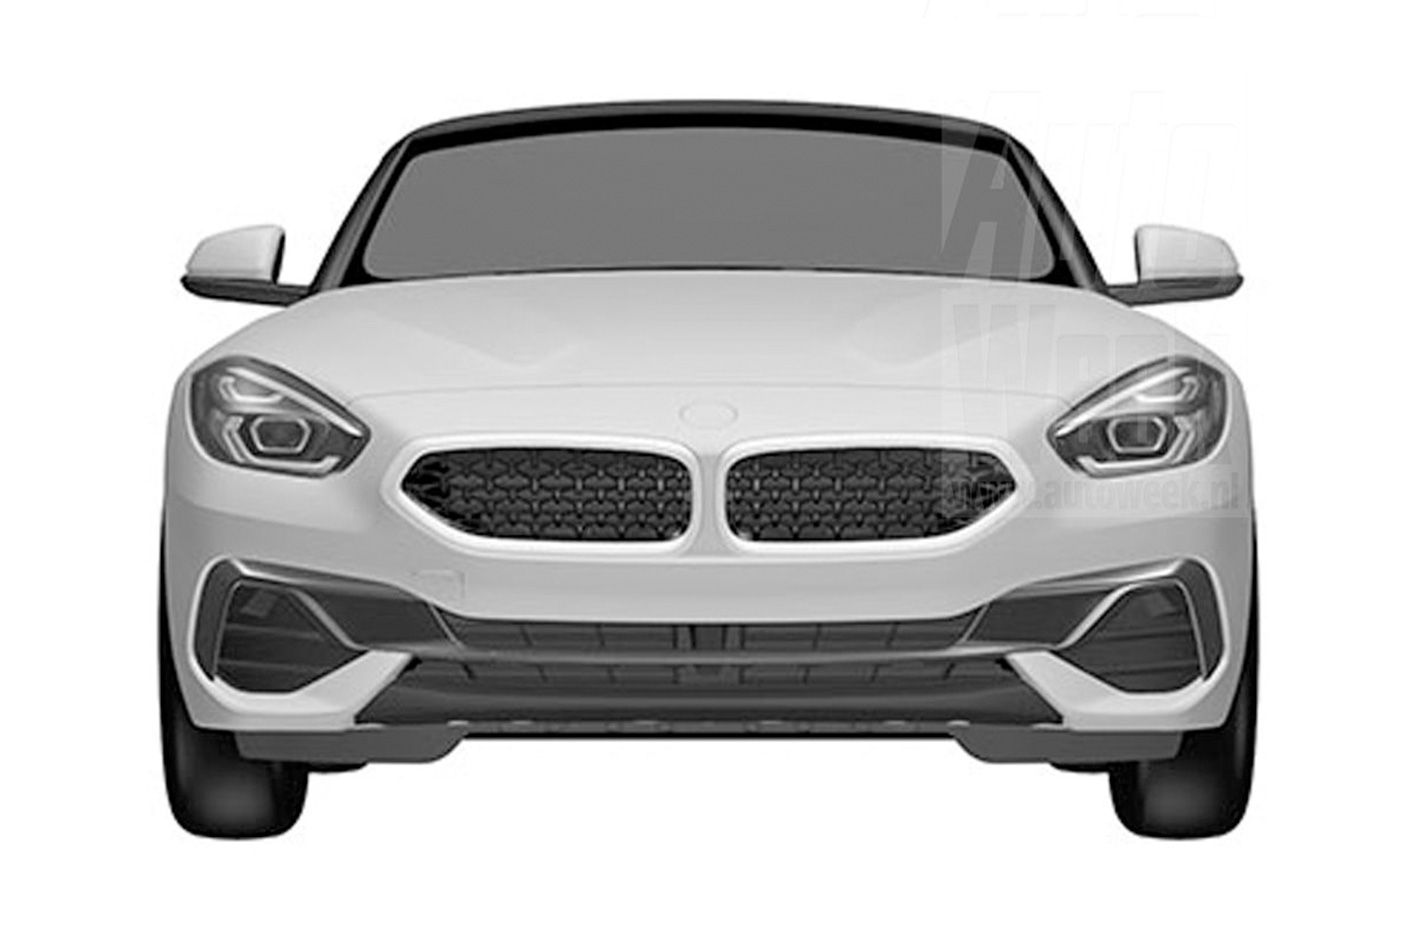 2019 BMW Z4 roadster patent drawings 4